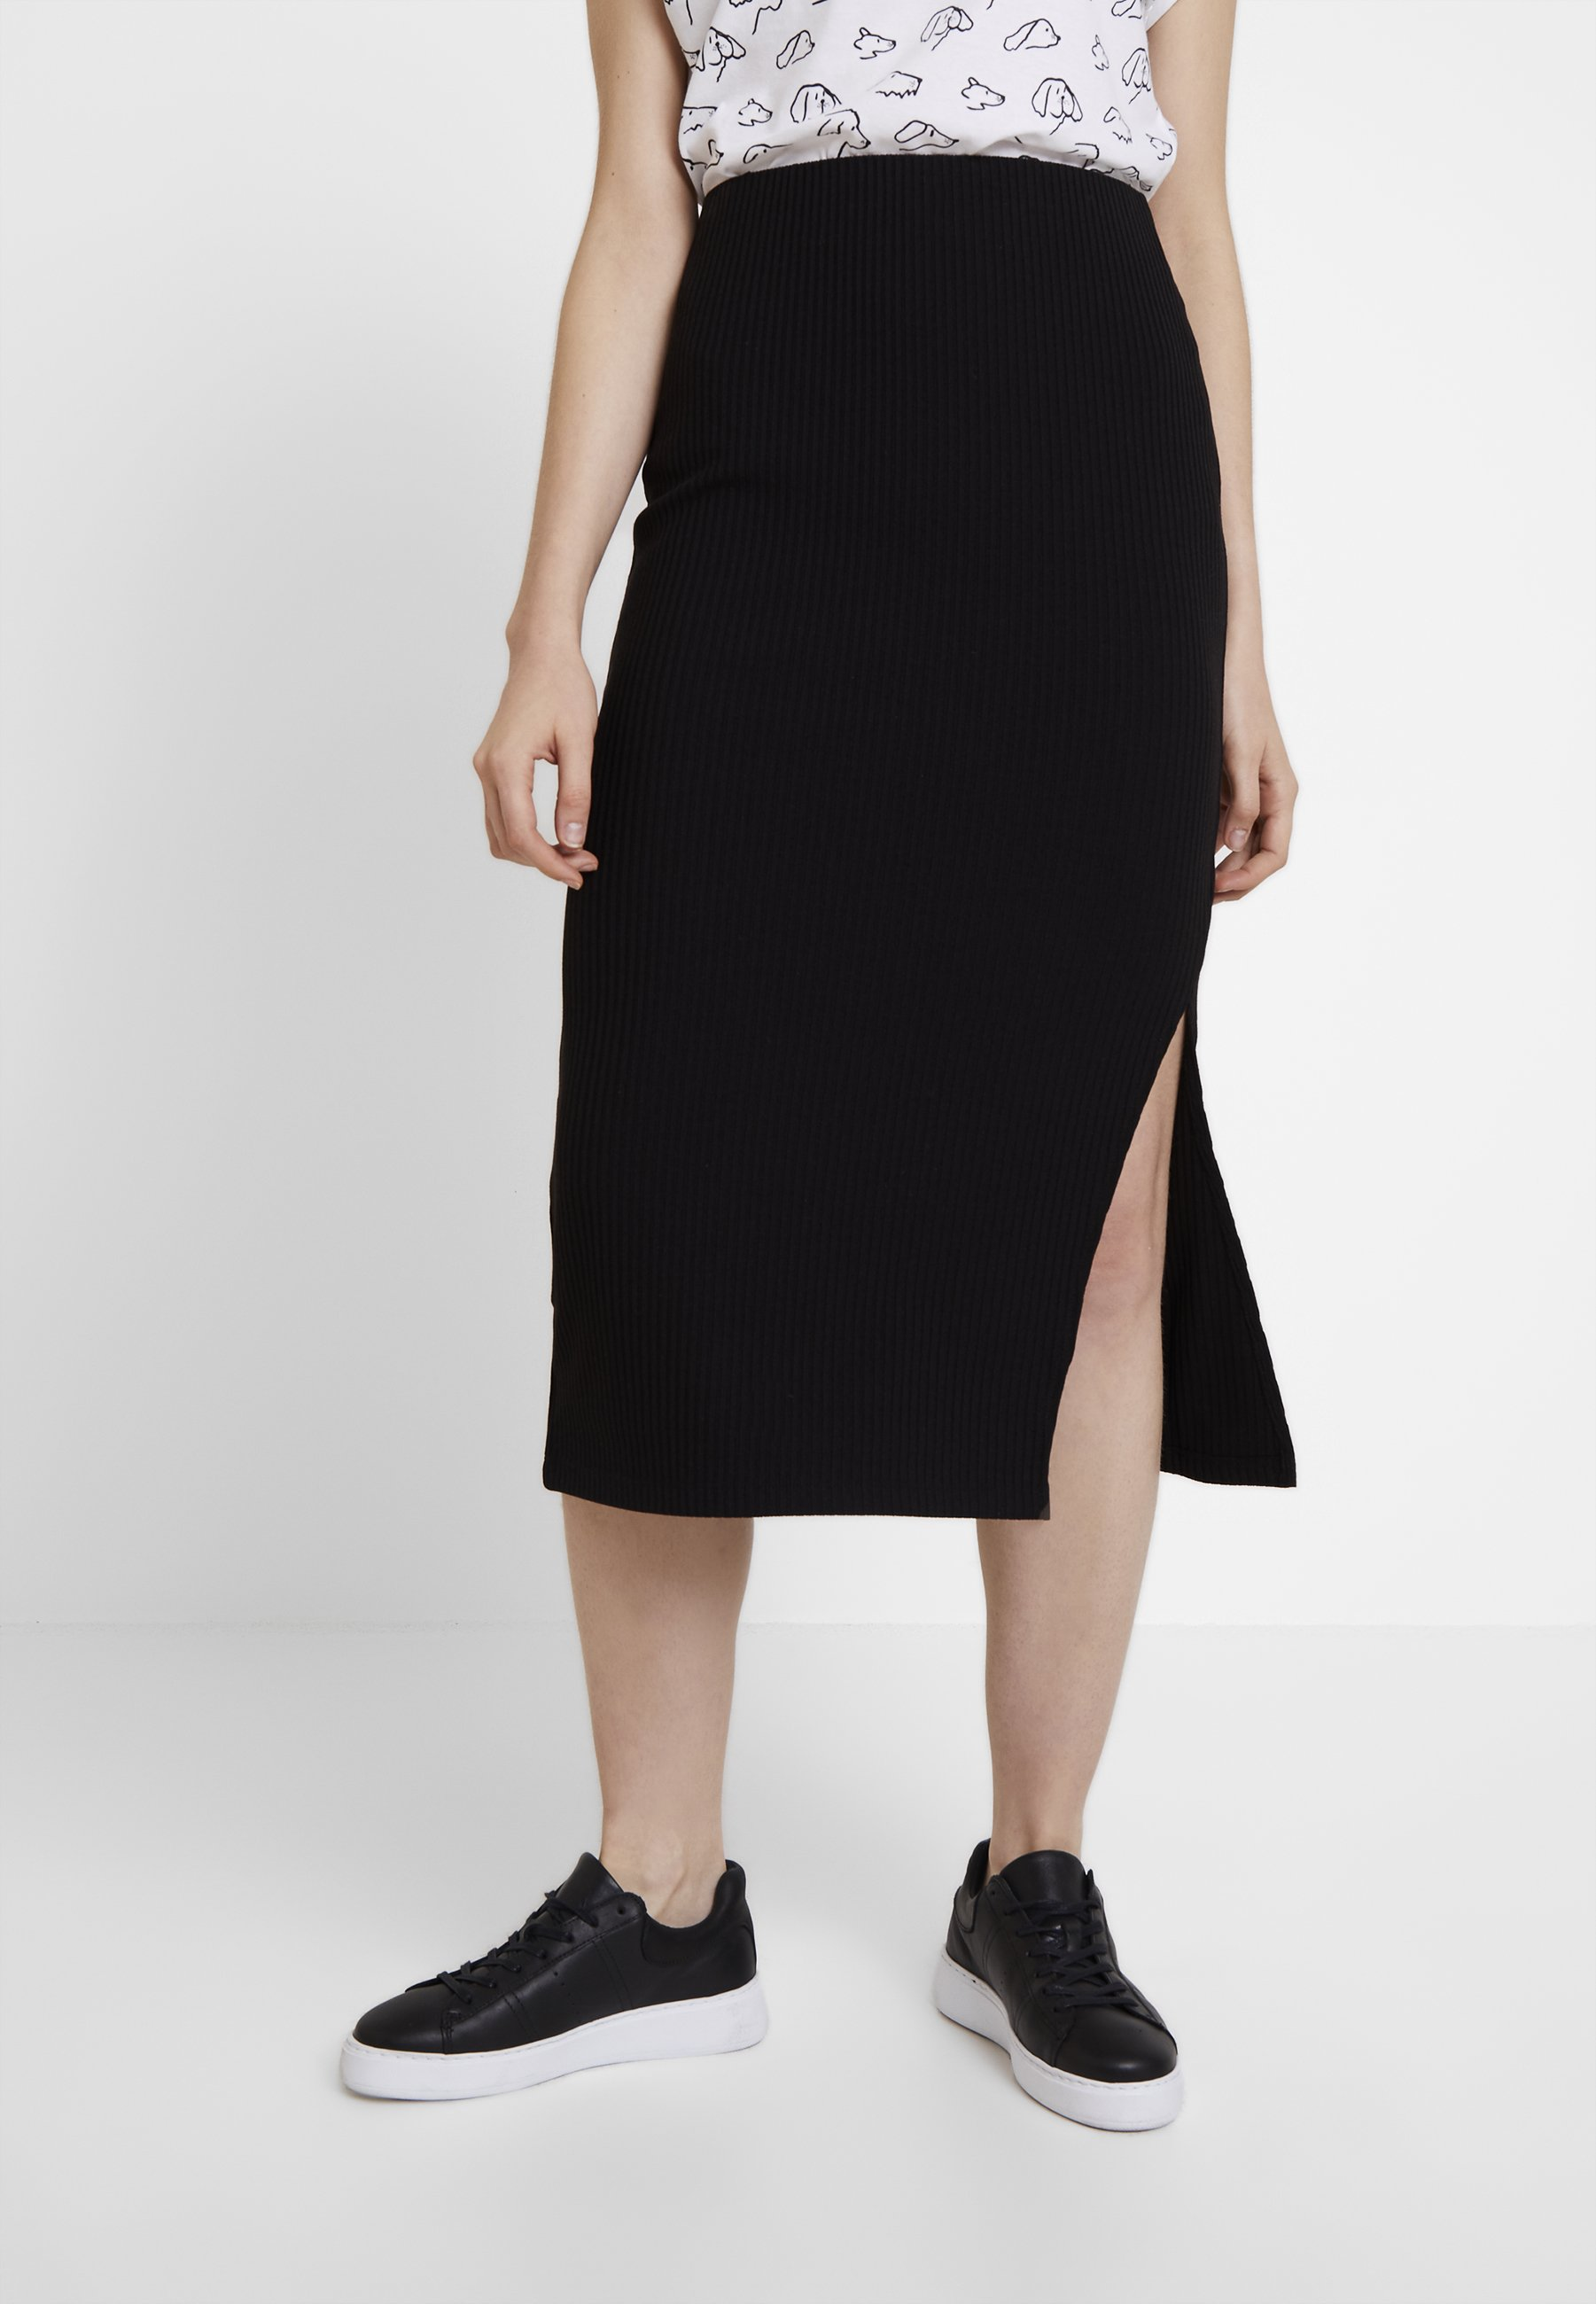 Black SkirtJupe Warehouse Midi Warehouse Crayon Midi CBxoed